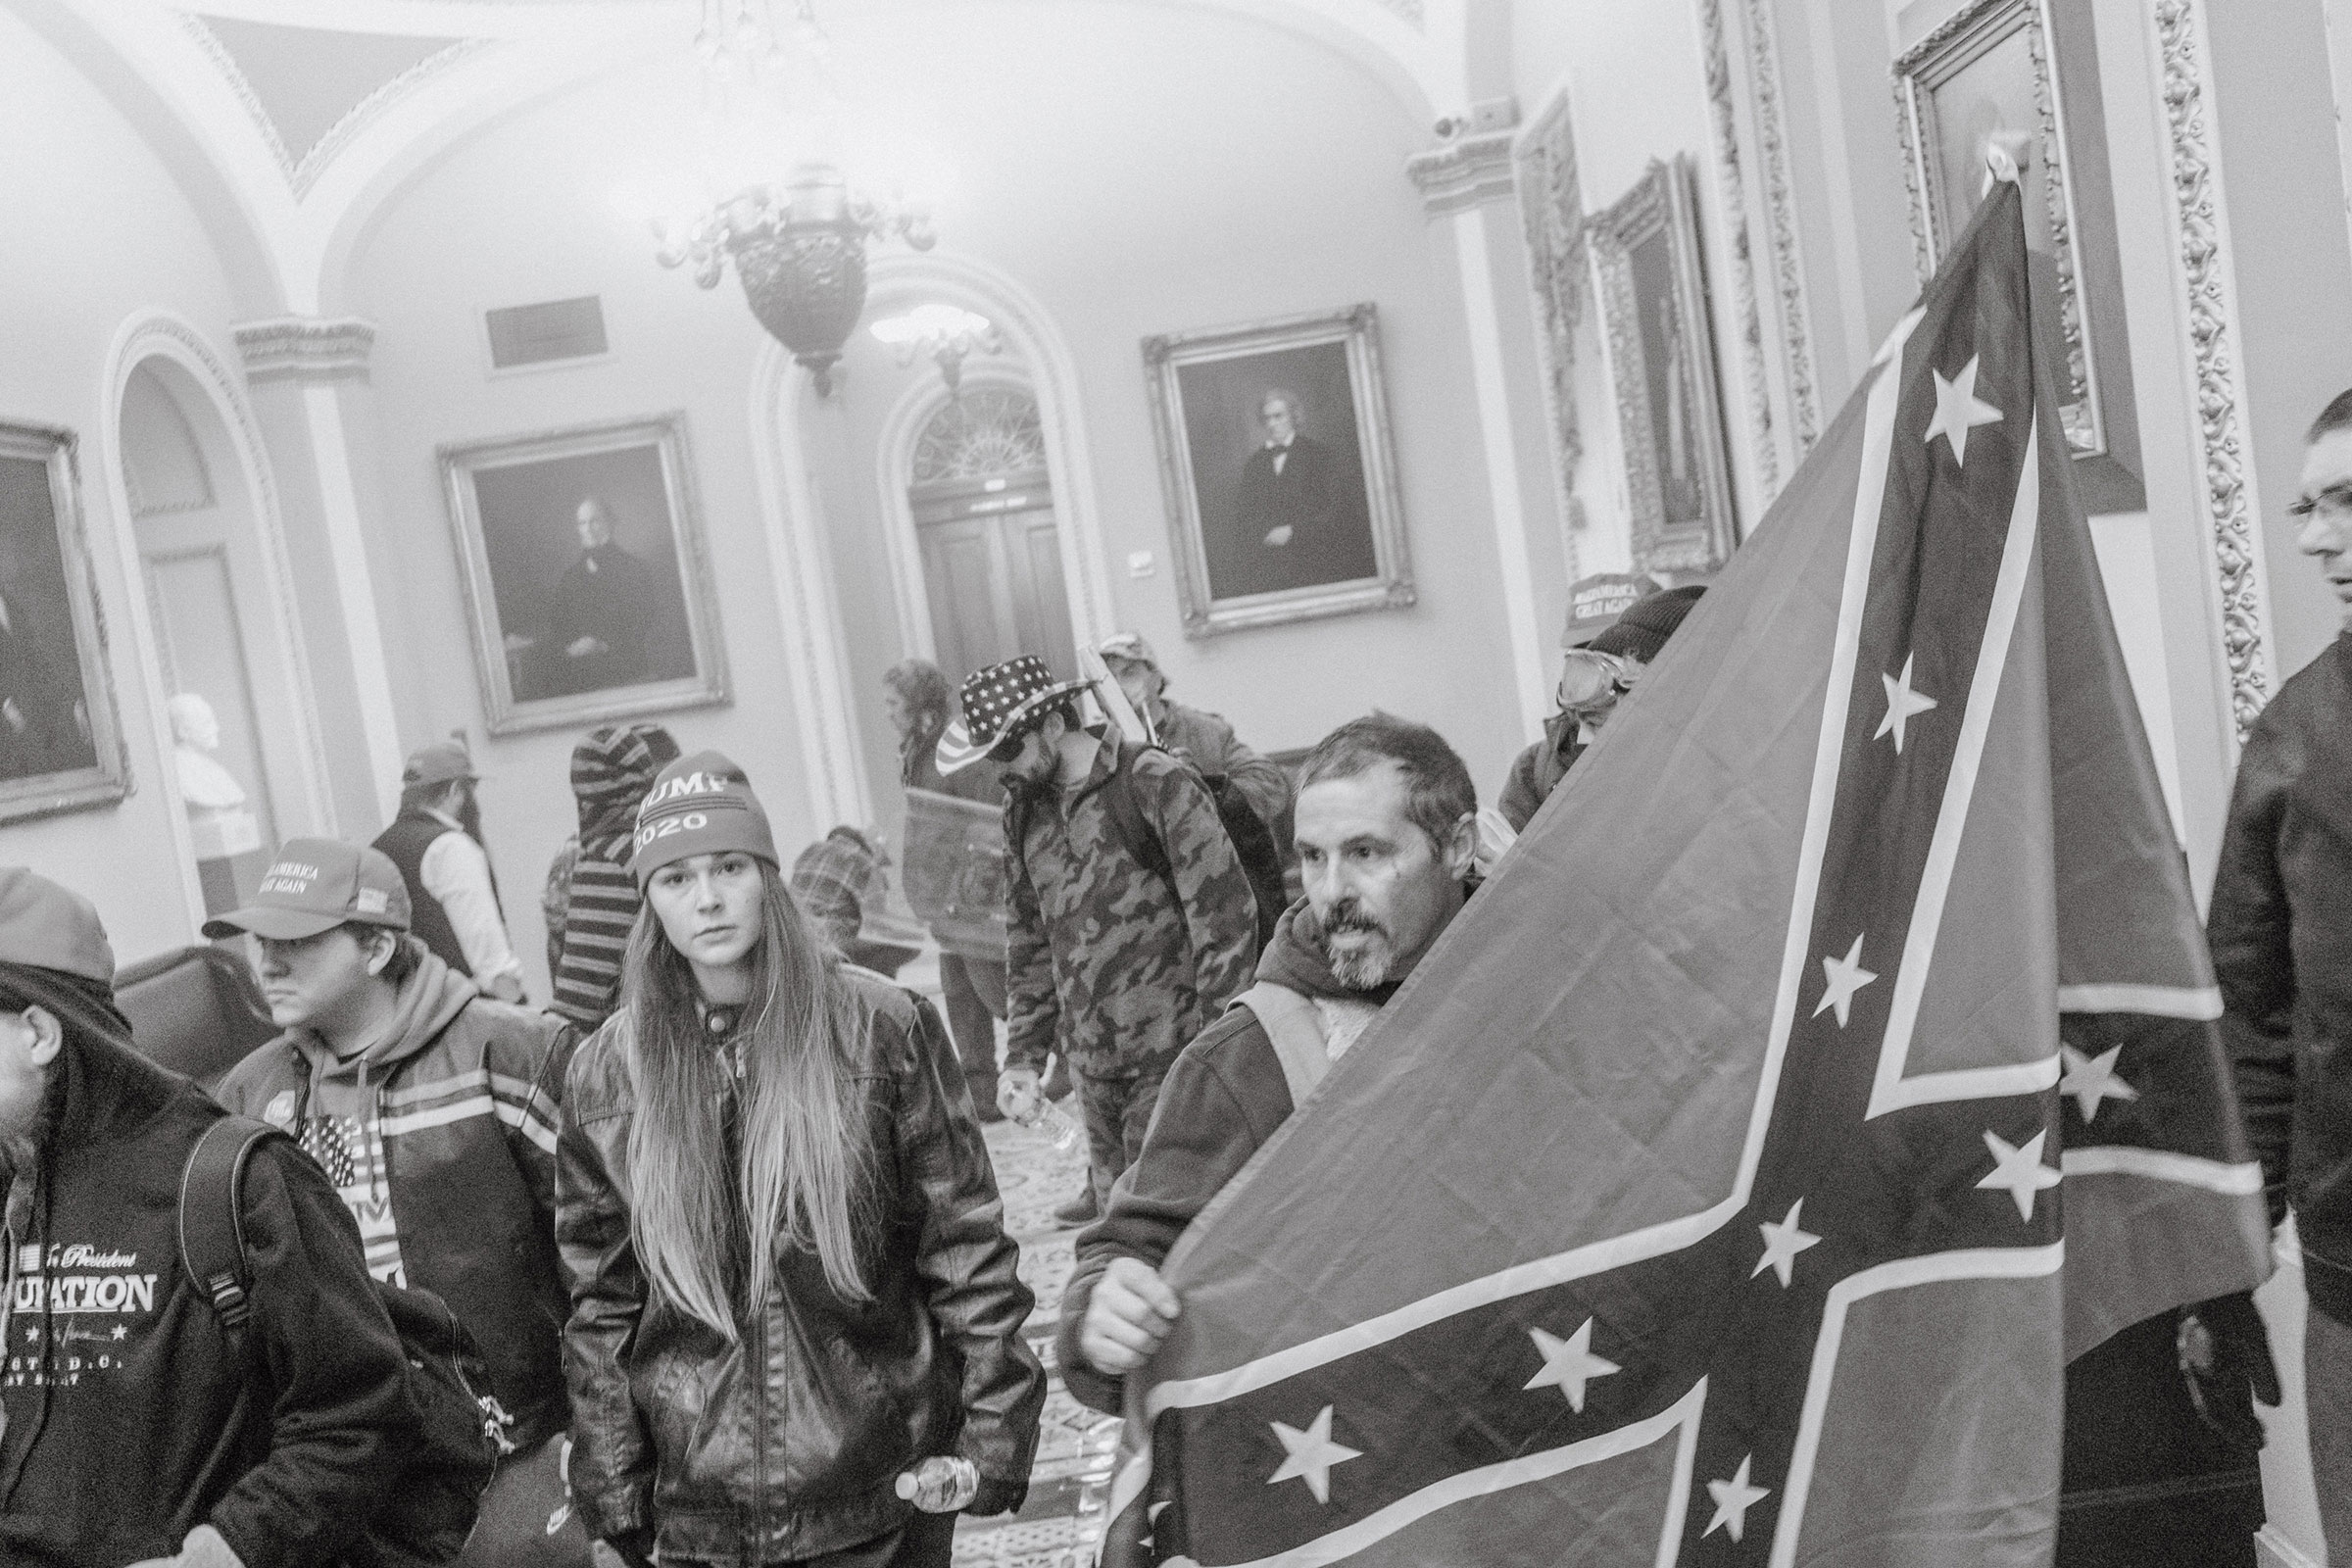 Pro-Trump rioters seen inside the Capitol on Jan. 6.